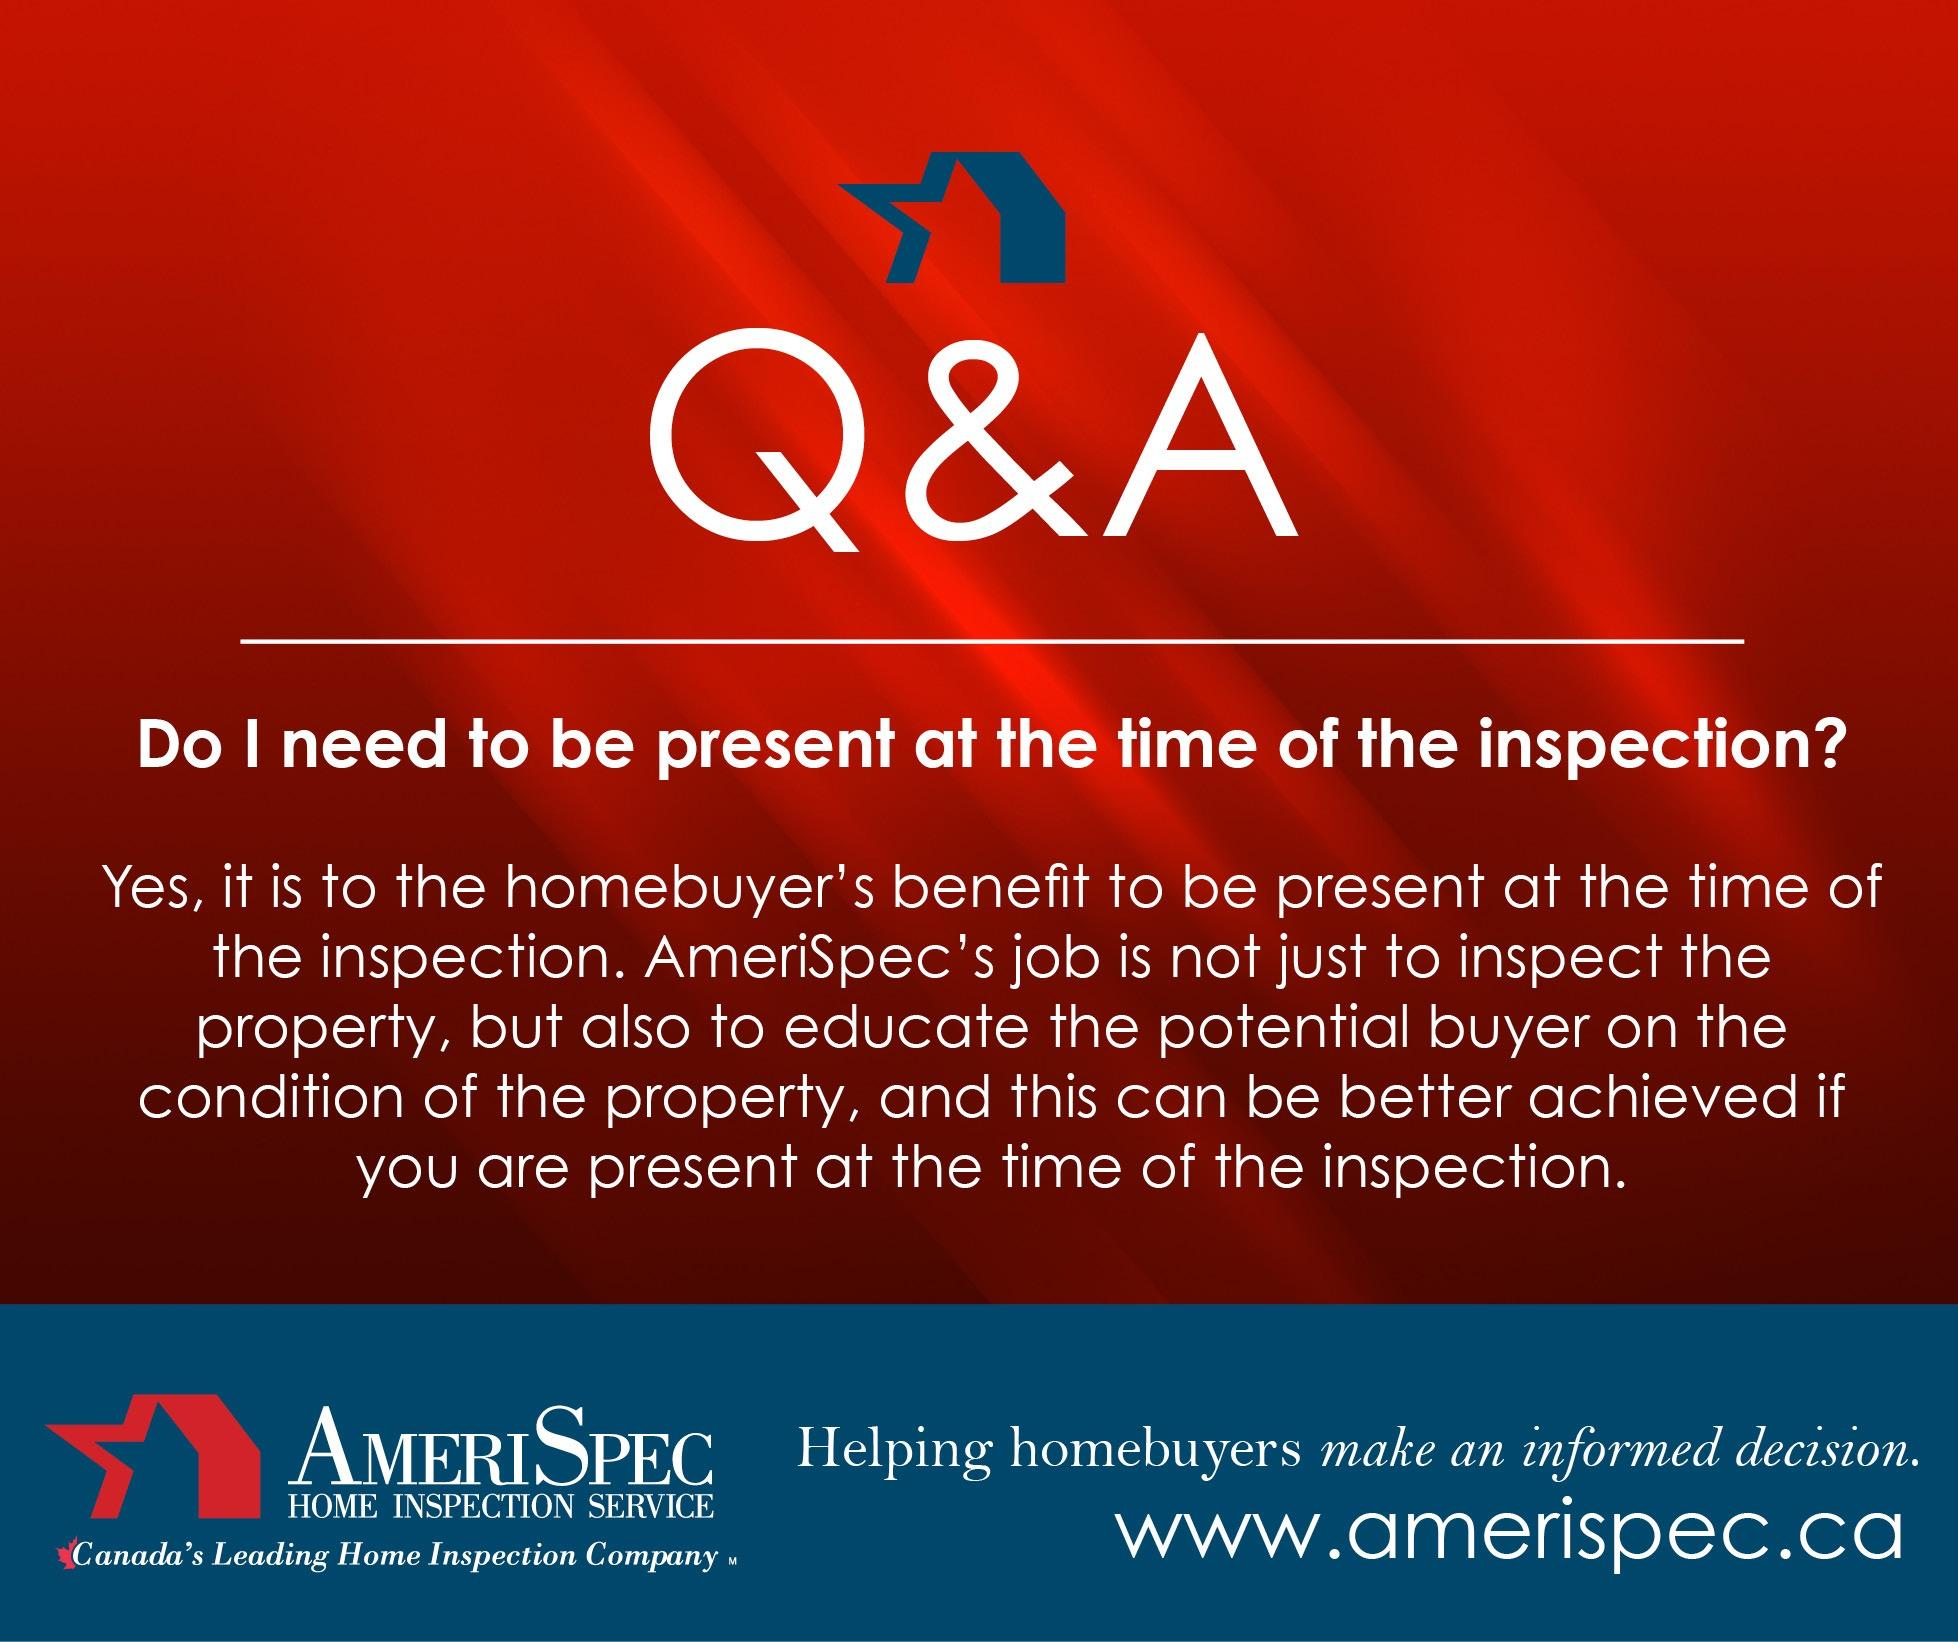 AmeriSpec Inspection Services of Calgary South